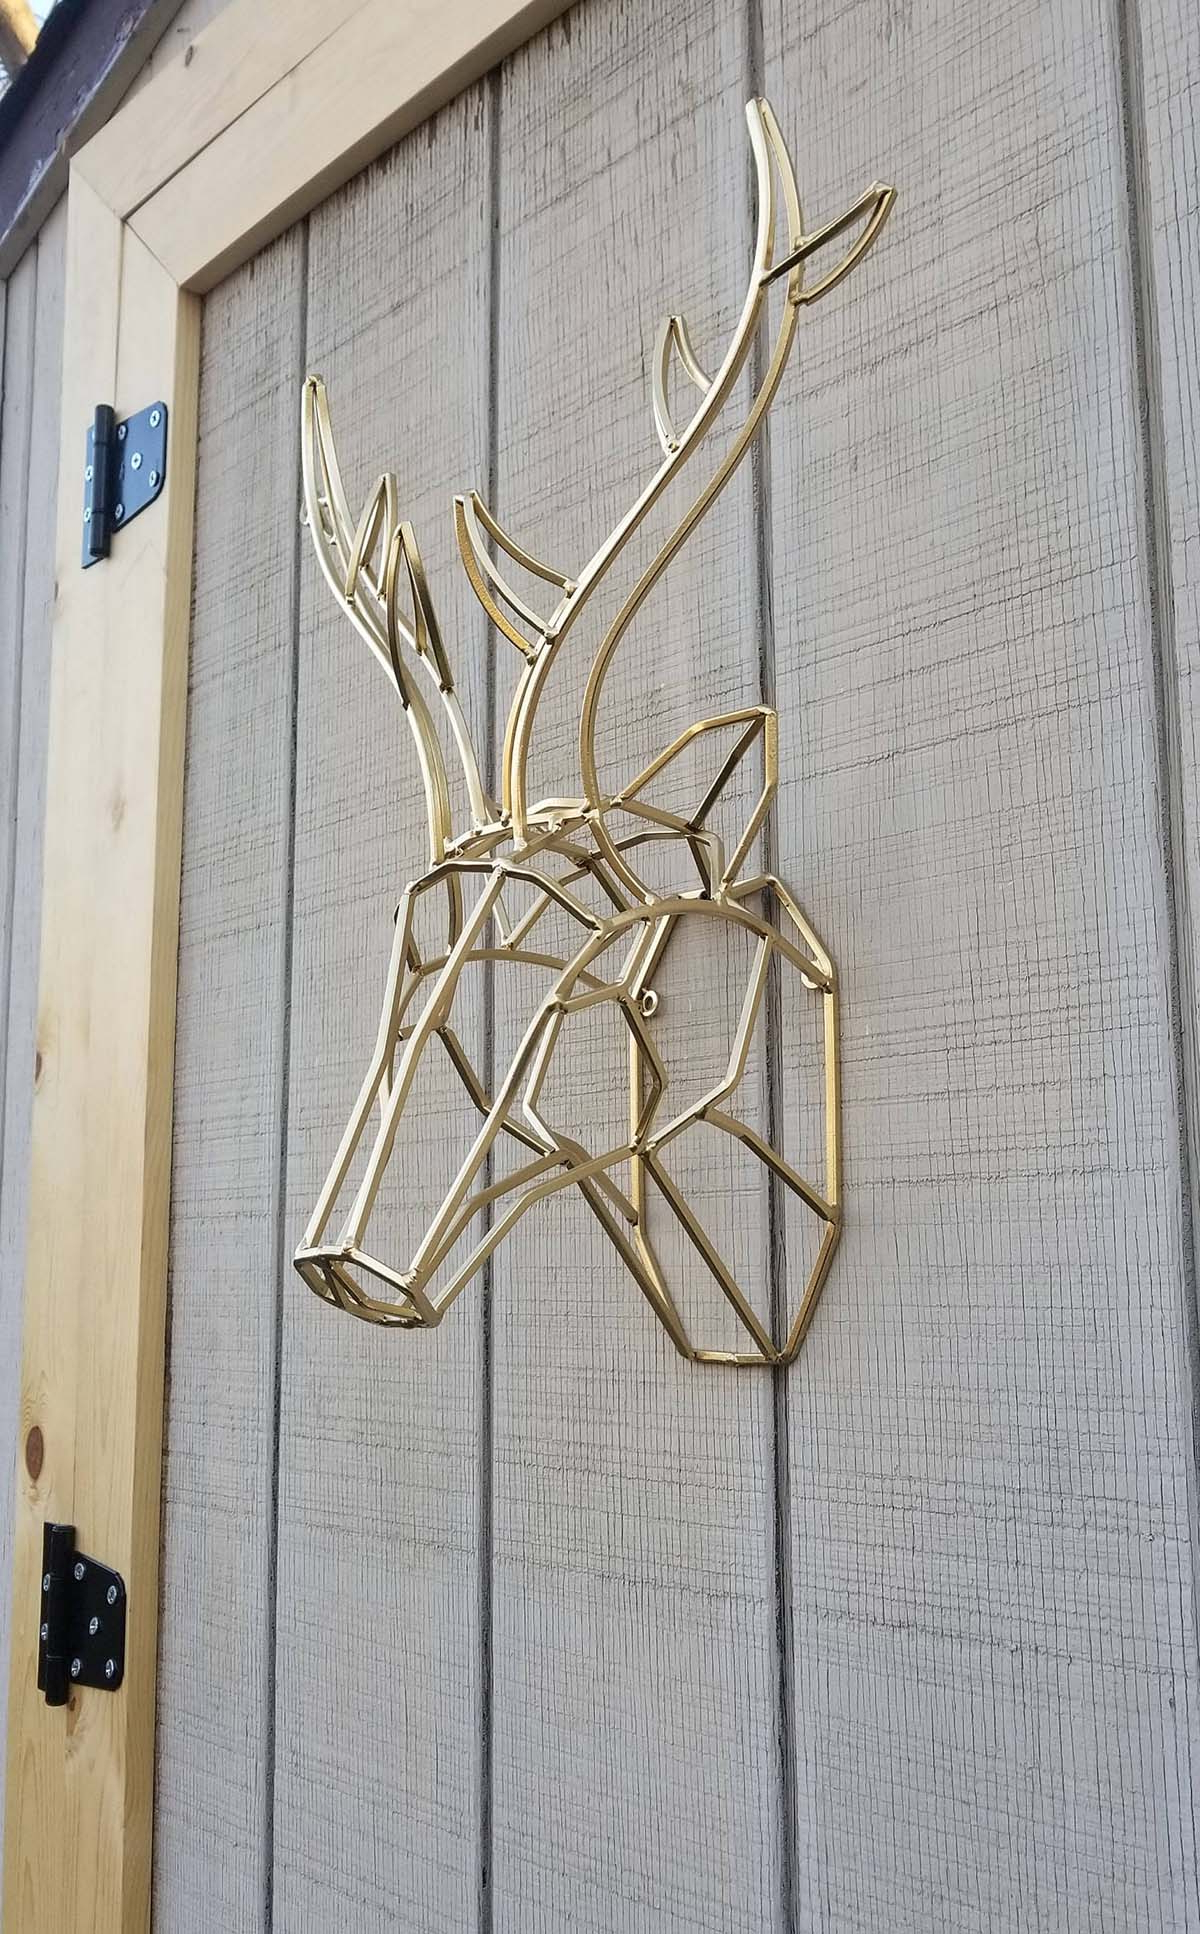 Family Themed Creative Metal Wall Décor Intended For Most Popular 31 Best Metal Wall Decor Ideas And Designs For (View 20 of 20)